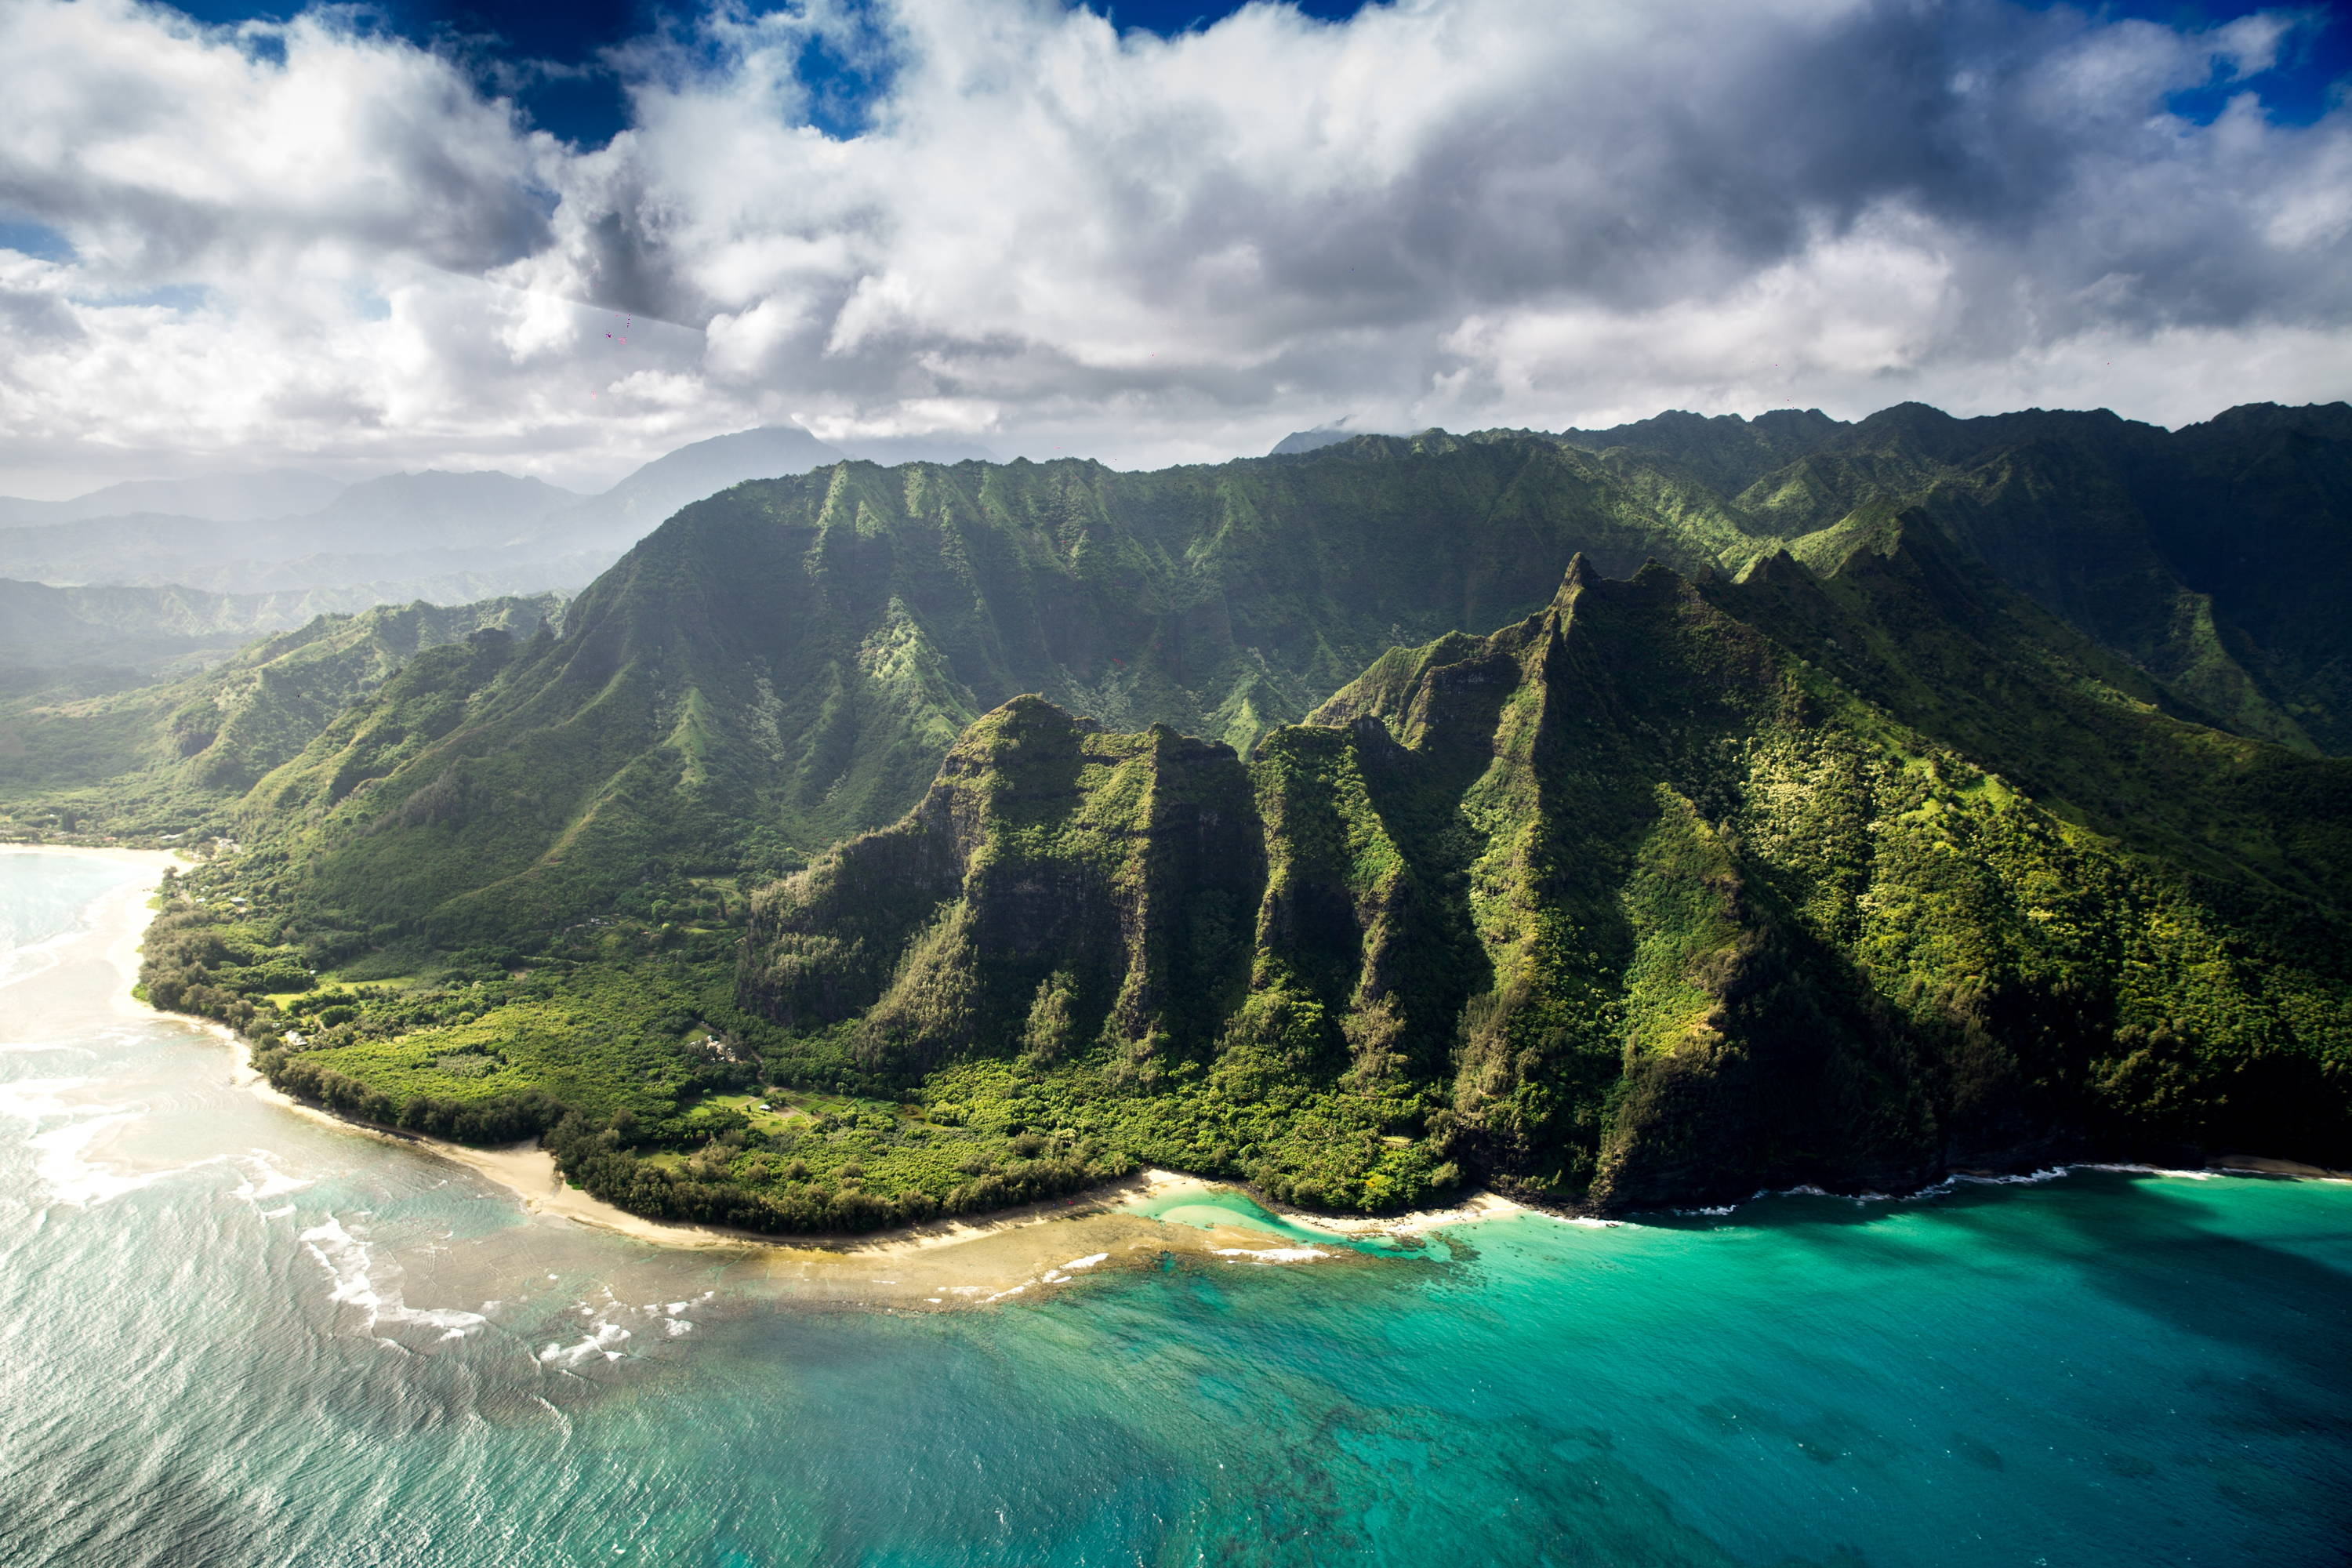 Things to Do in Kauai: The Garden Island of Adventure. Helicopter view of the Na Pali Coast with bright green foliage in the distance, turquoise water below, and blue sky with clouds above.